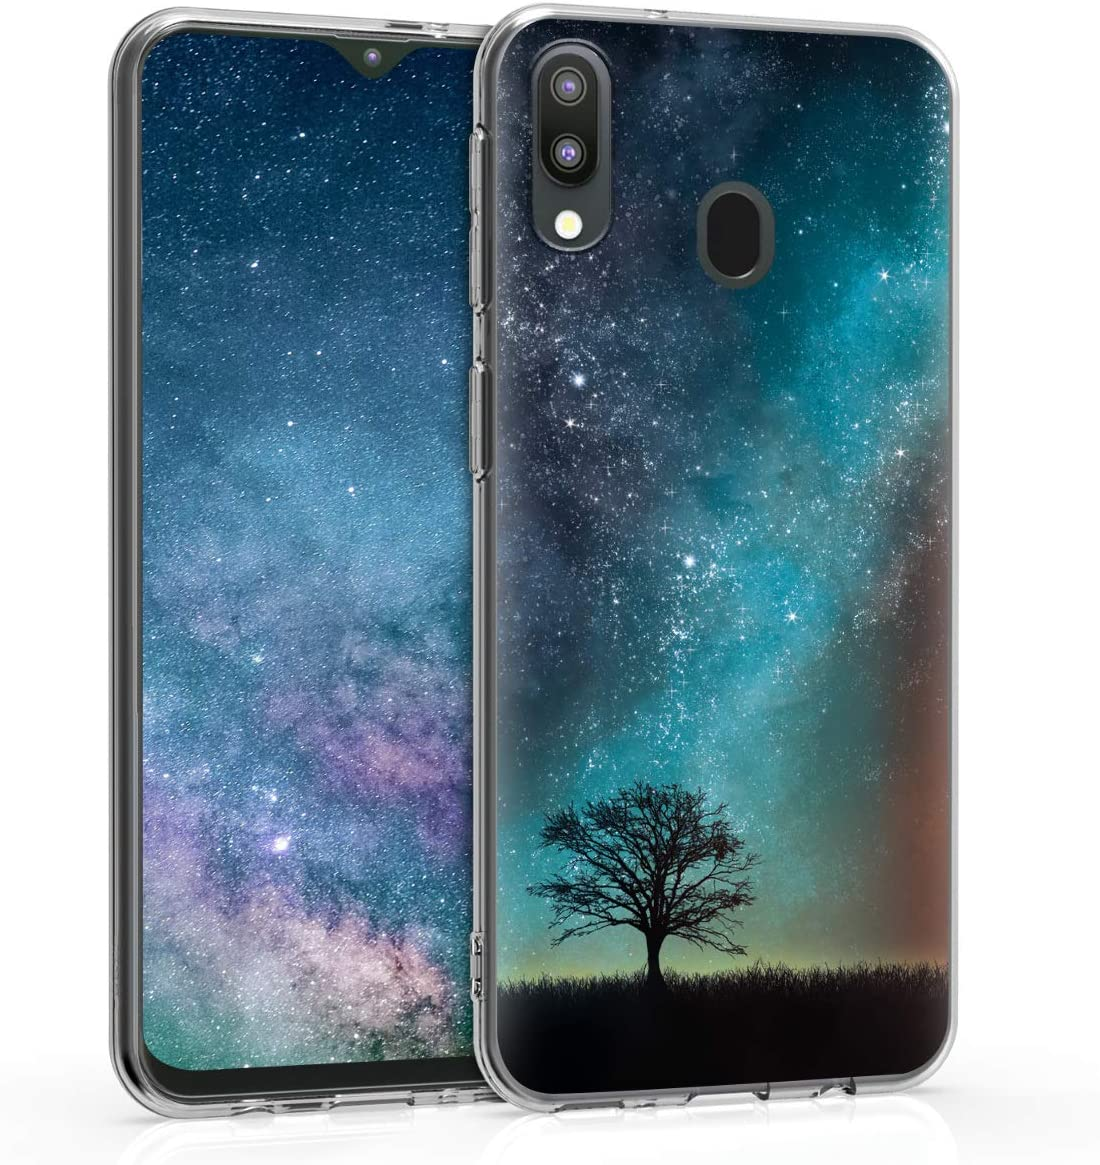 kwmobile Case Compatible with Samsung Galaxy M20 (2019) - TPU Crystal Clear Back Protective Cover IMD Design - Cosmic Nature Blue/Grey/Black